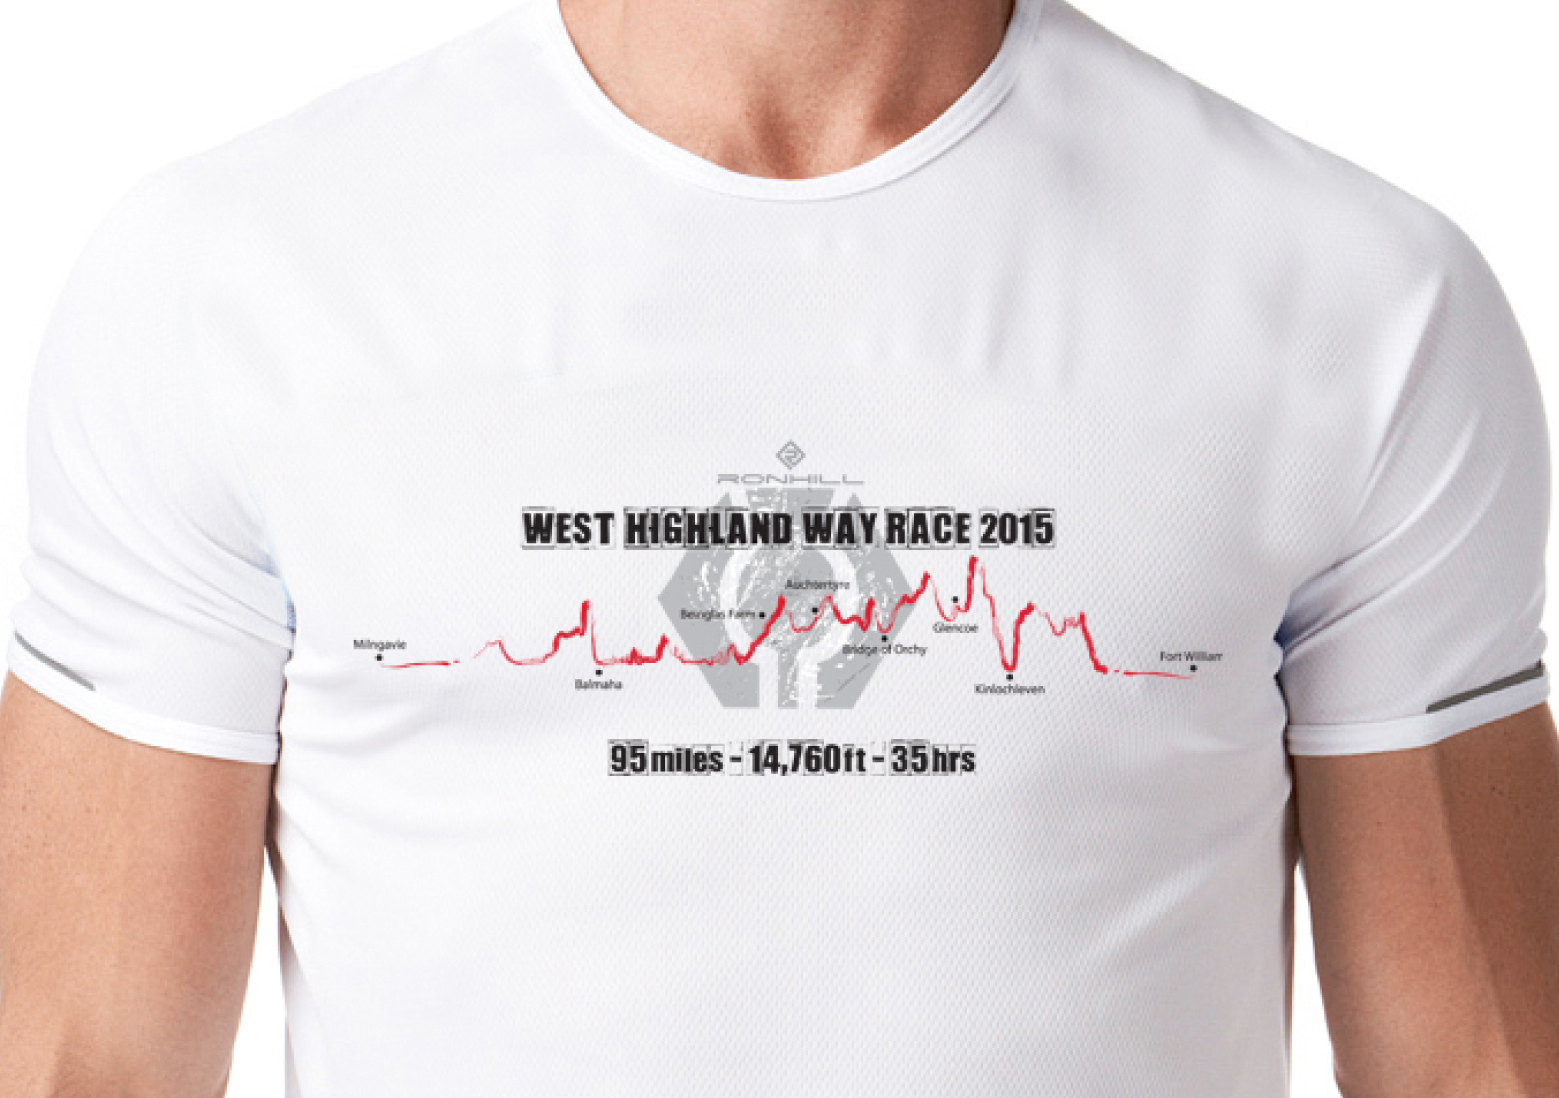 Ronhill West Highland Way Race